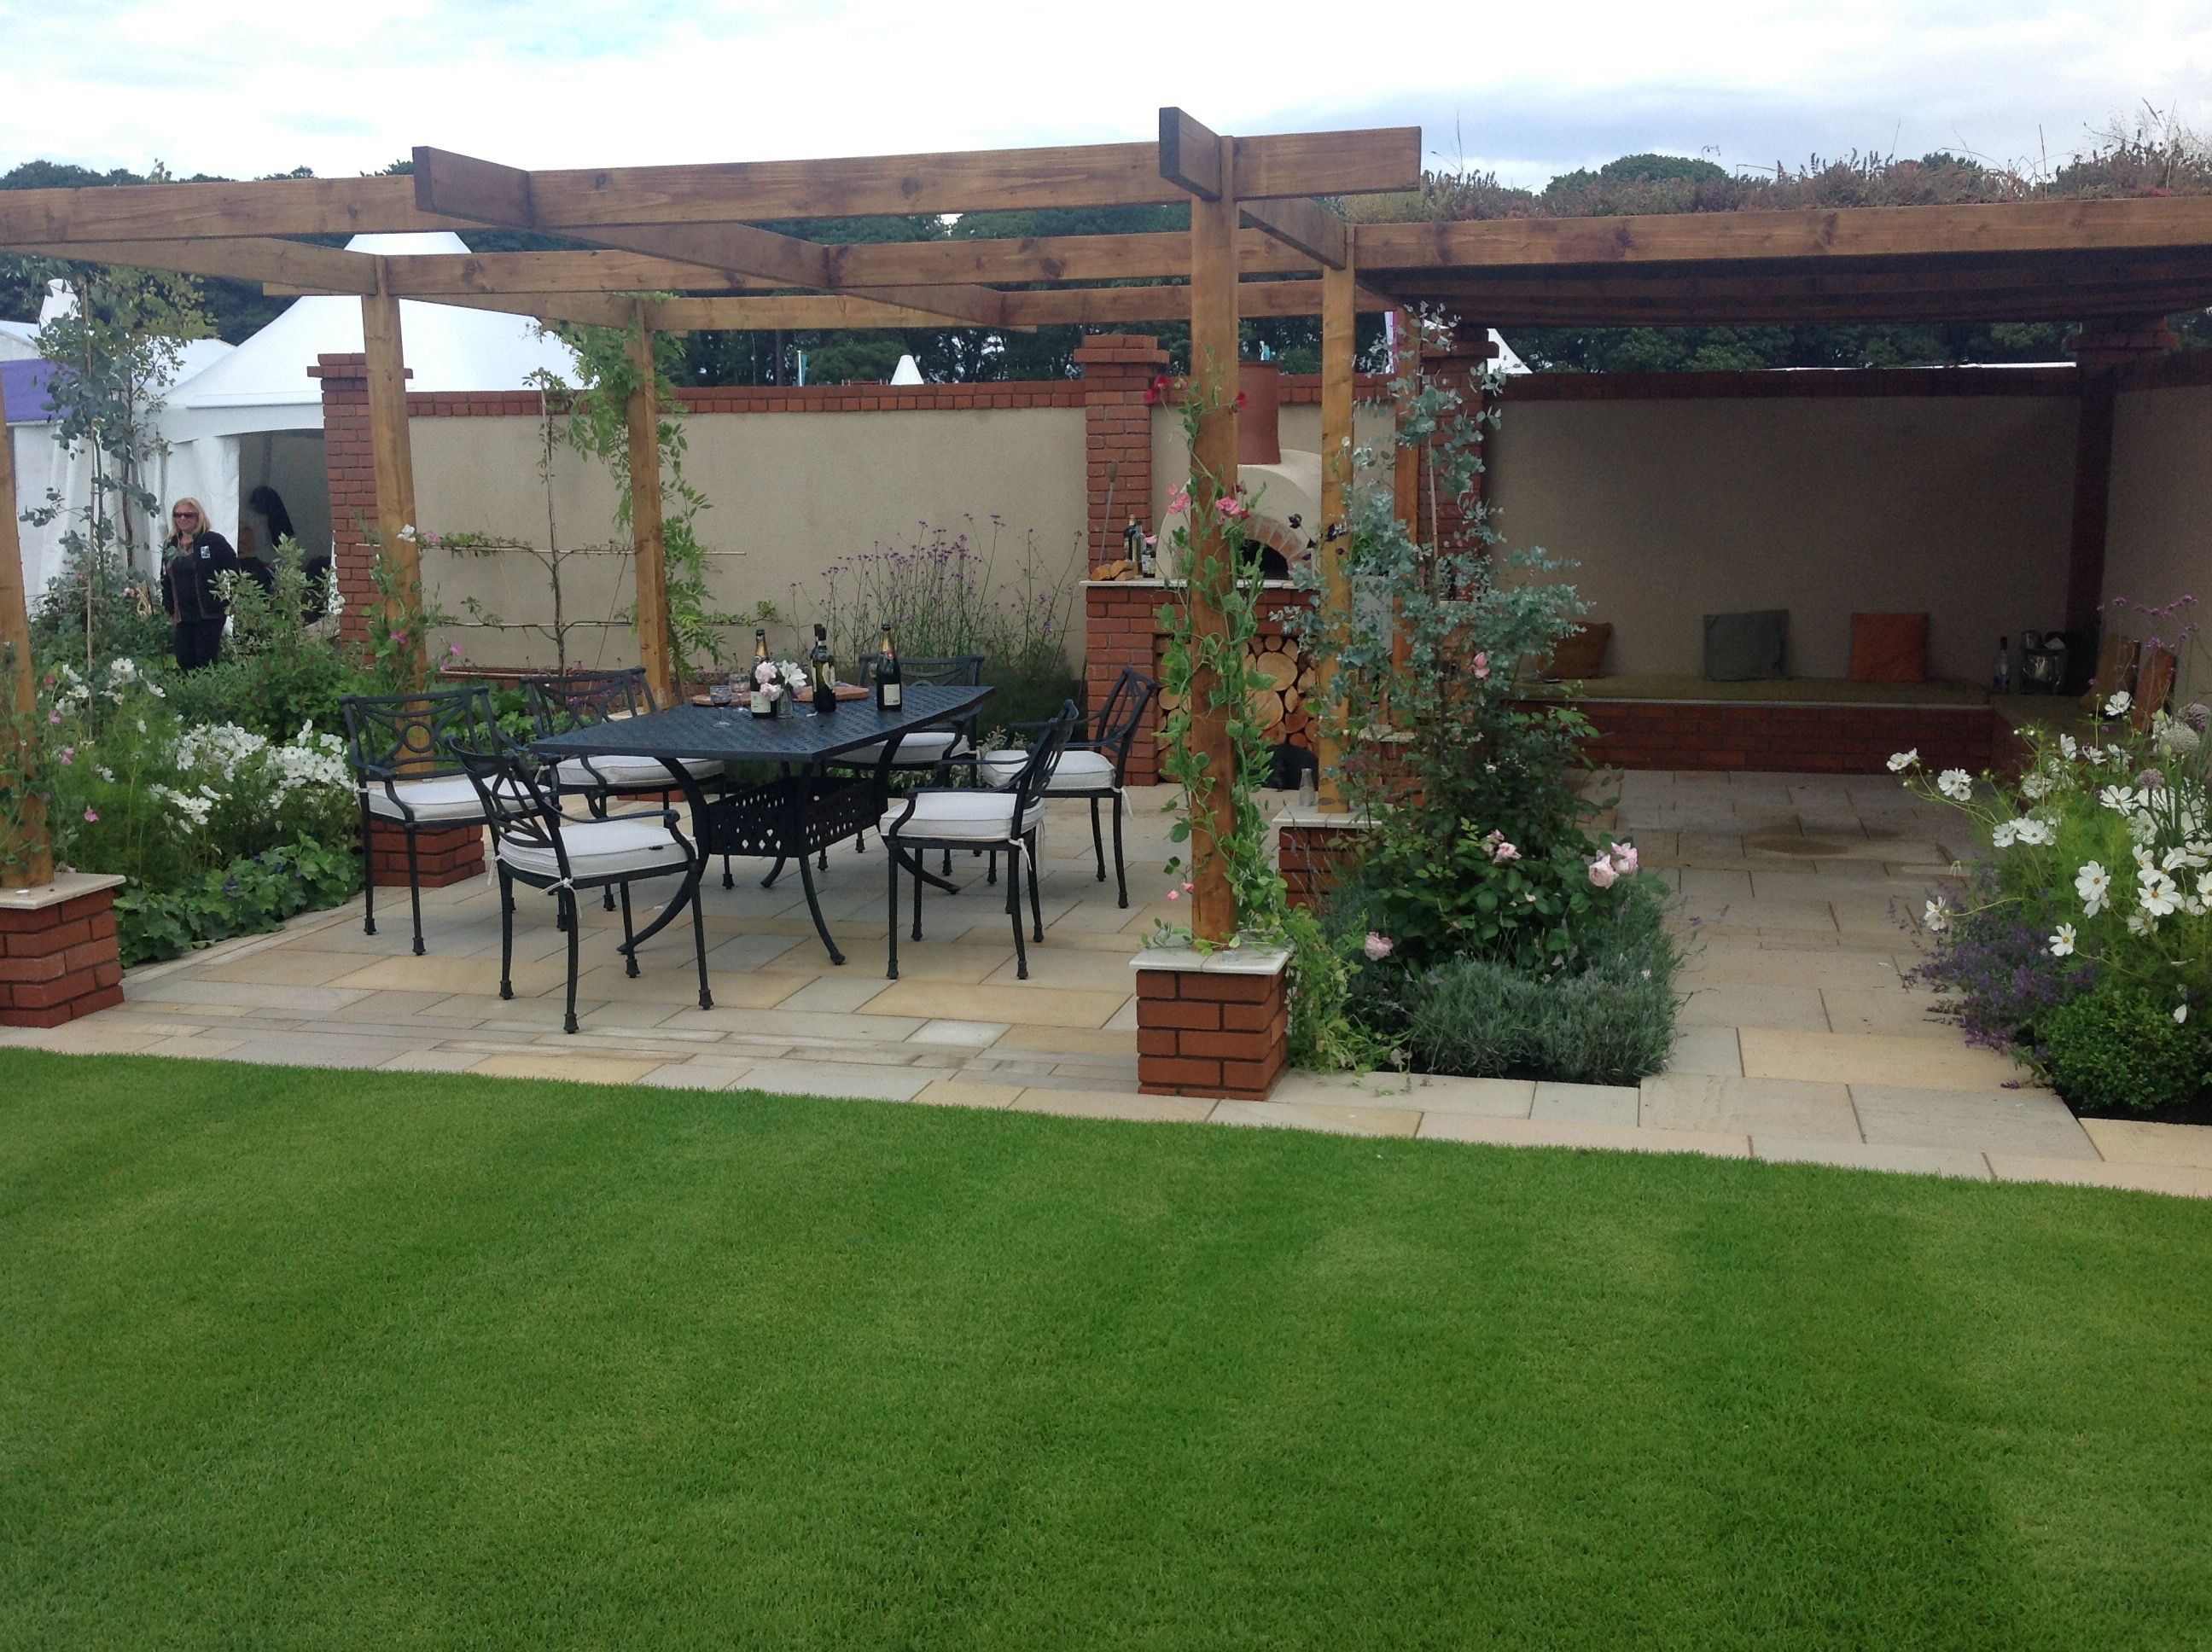 Cooking, dining patio with lawn and flower beds